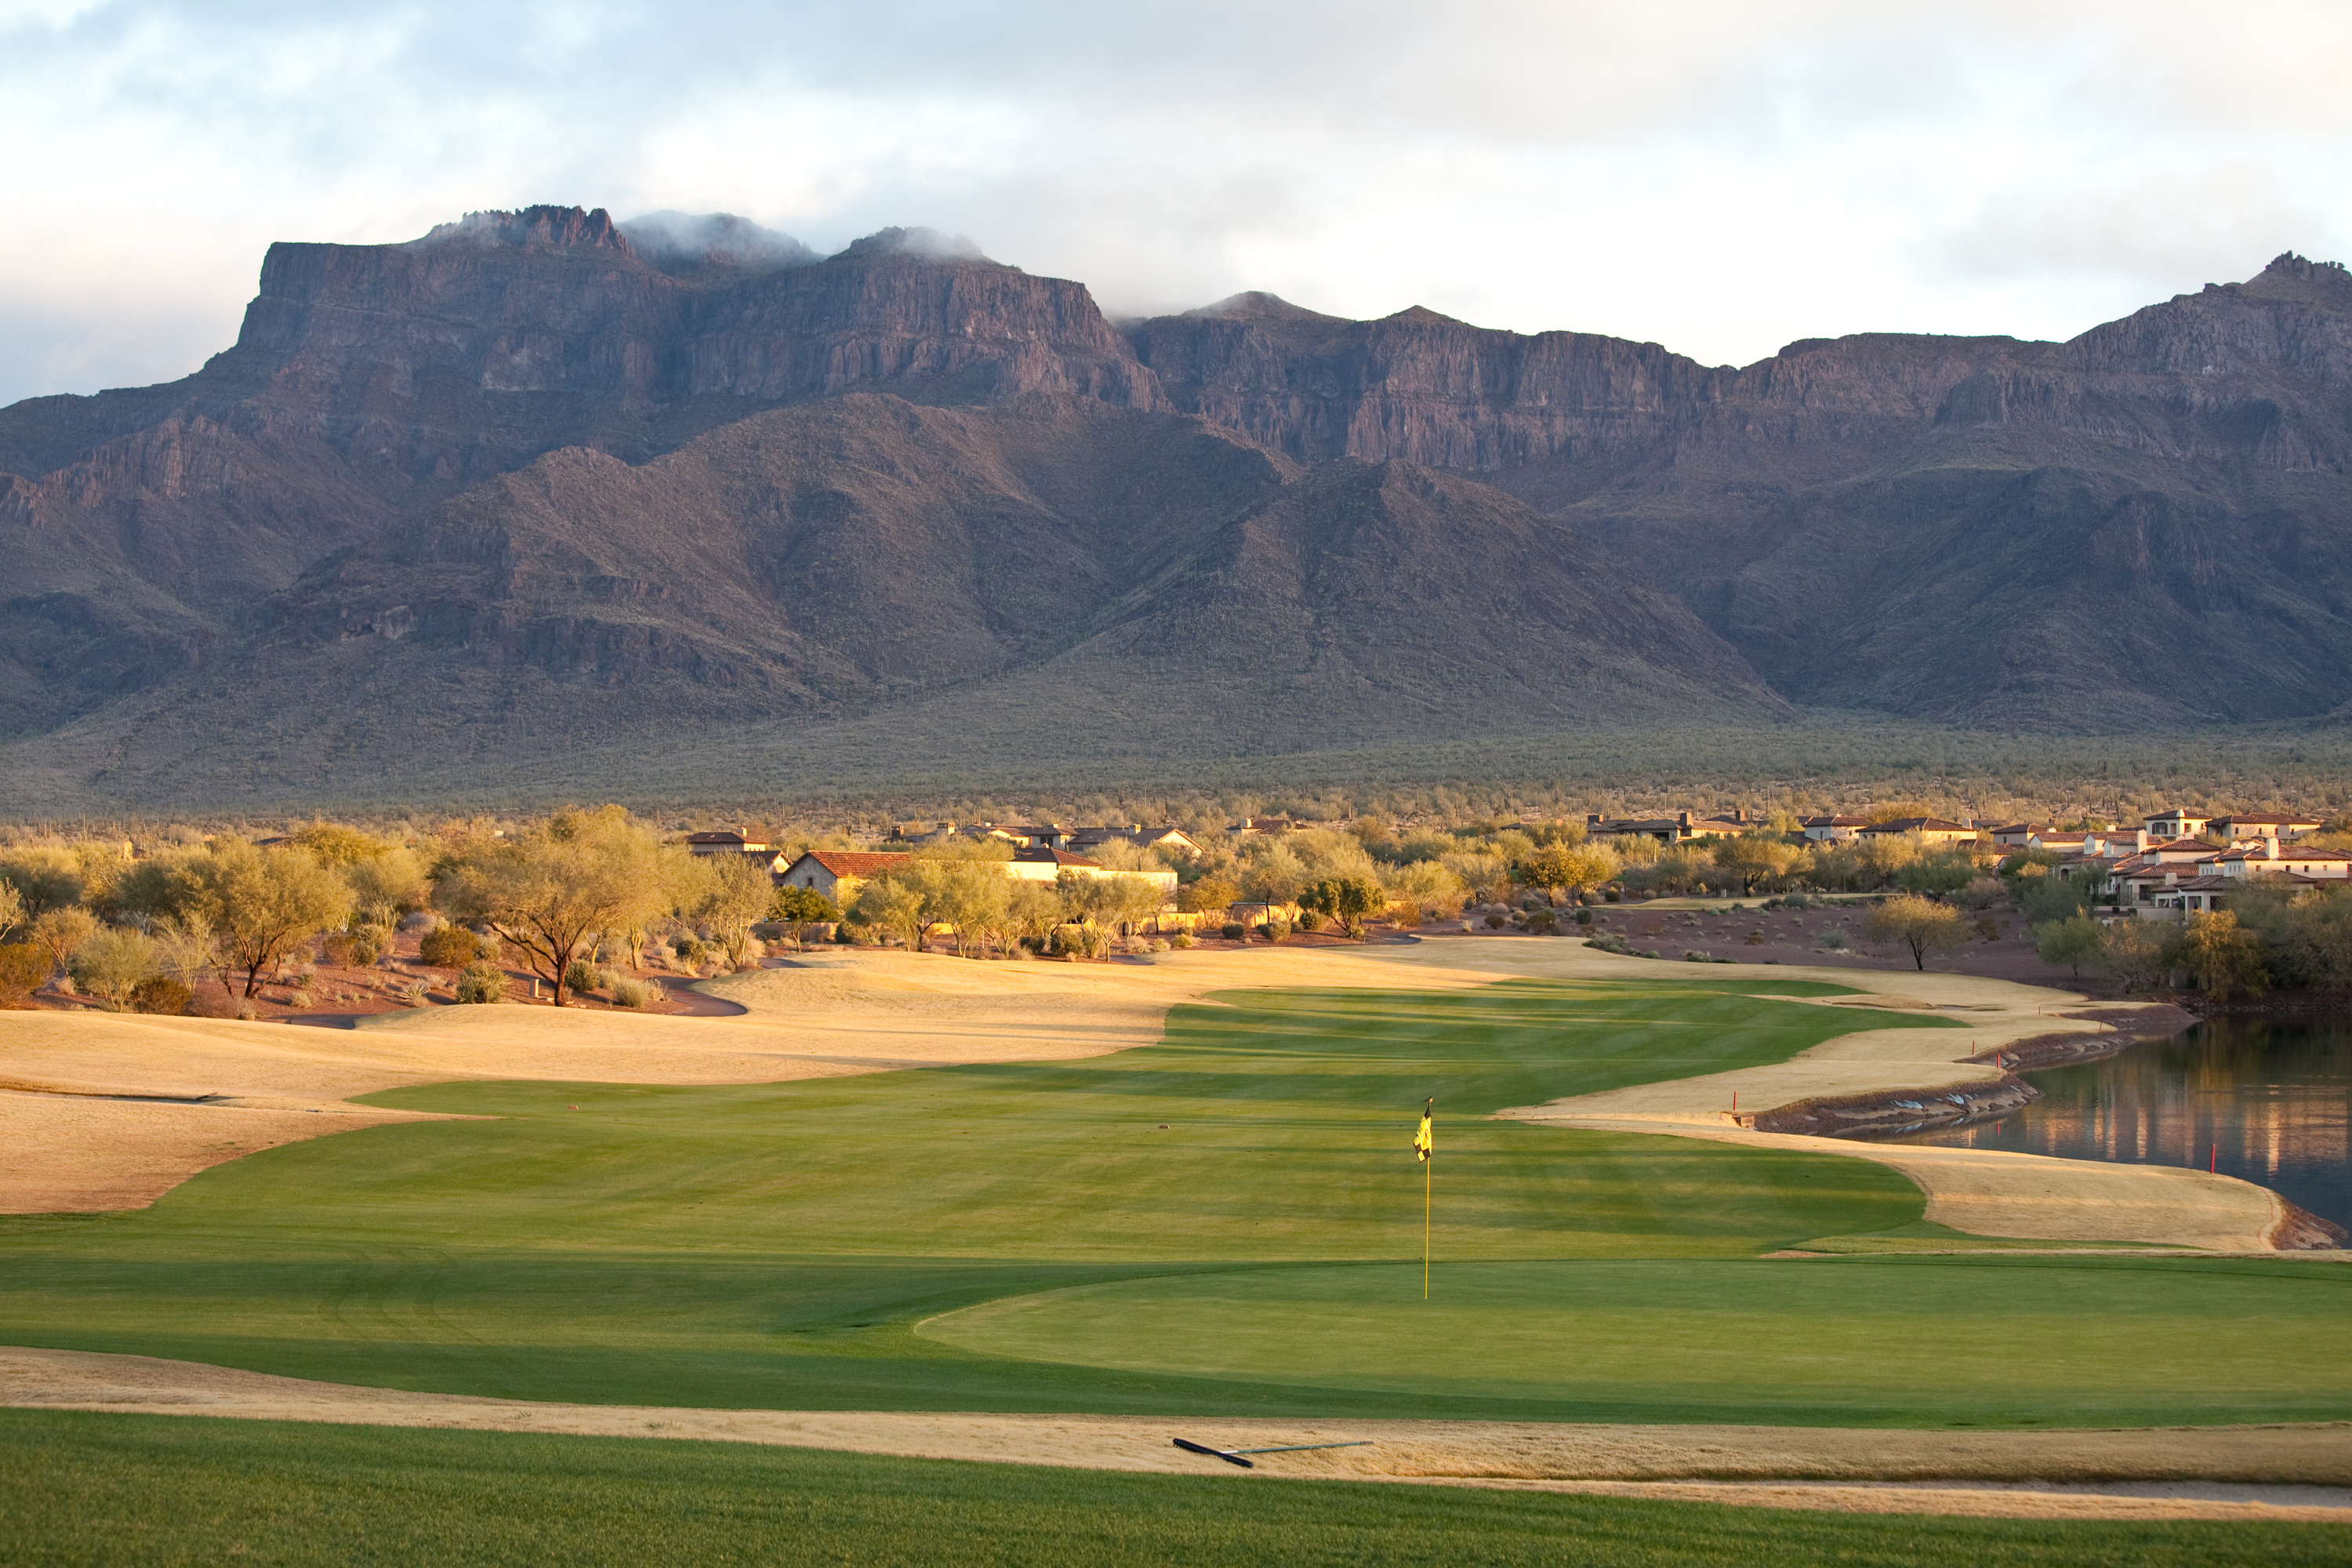 A lush fairway framed by rugged mountains on the horizon.